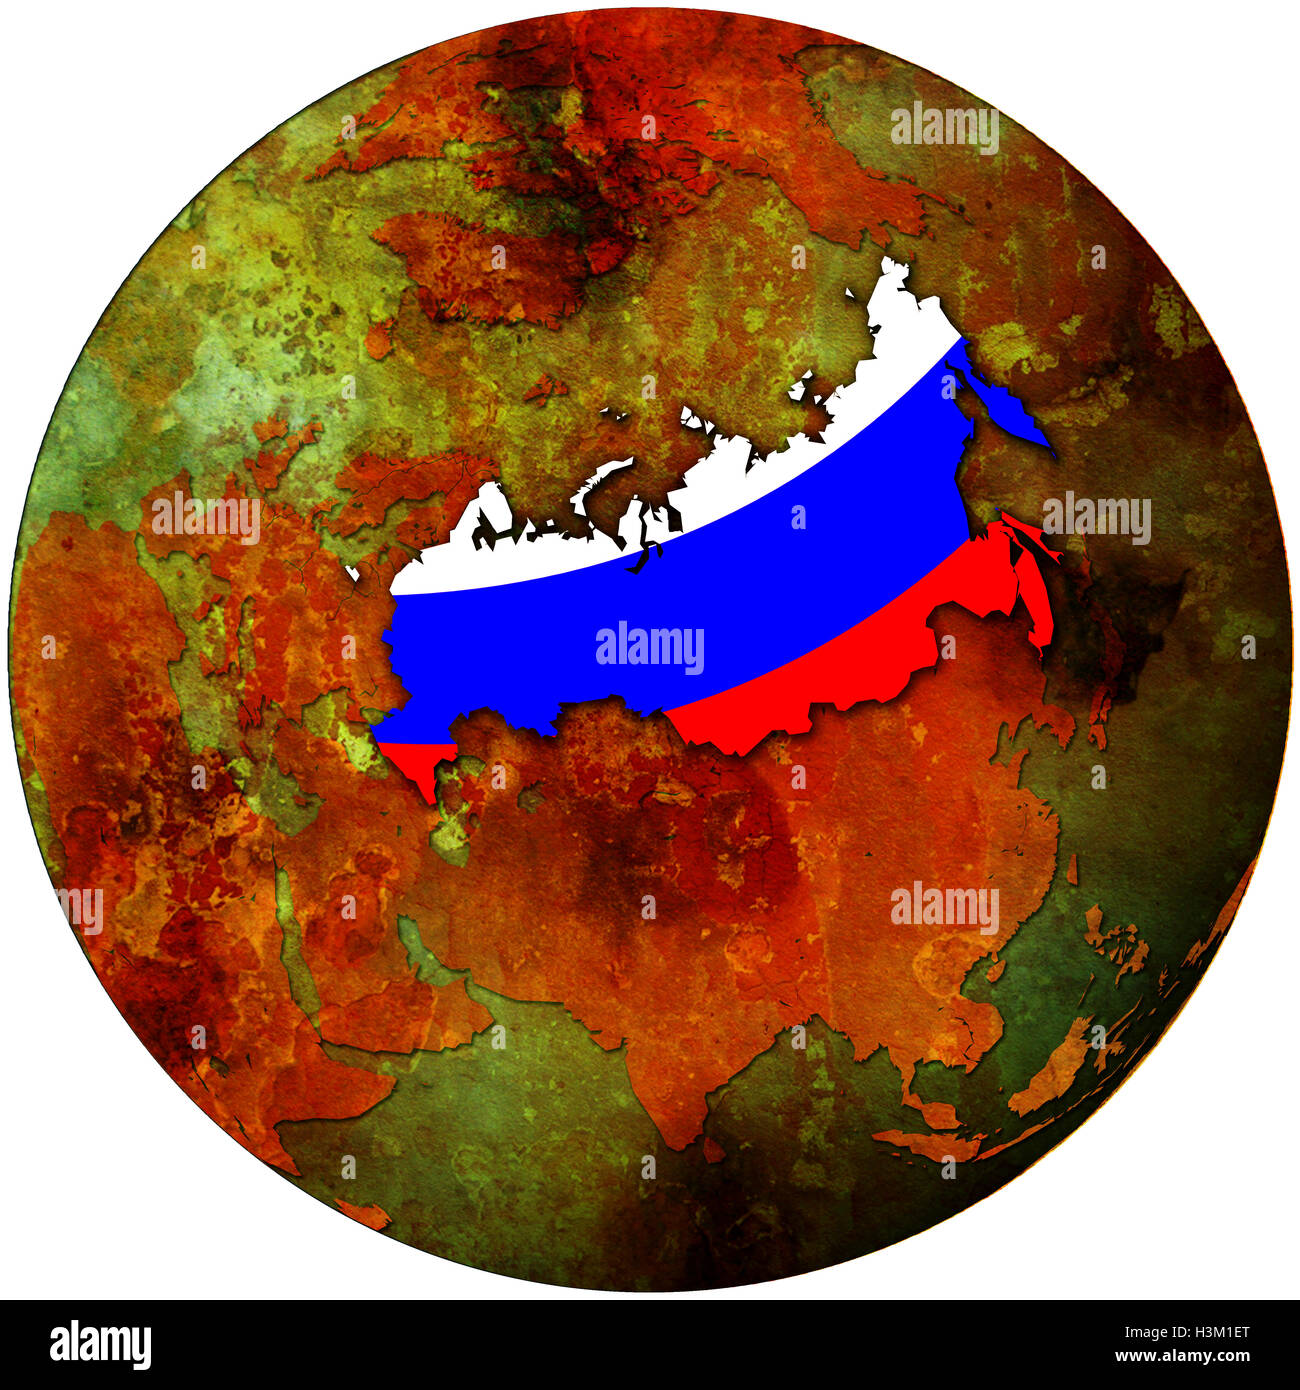 Russia flag on map of earth globe stock photo royalty free image russia flag on map of earth globe gumiabroncs Images